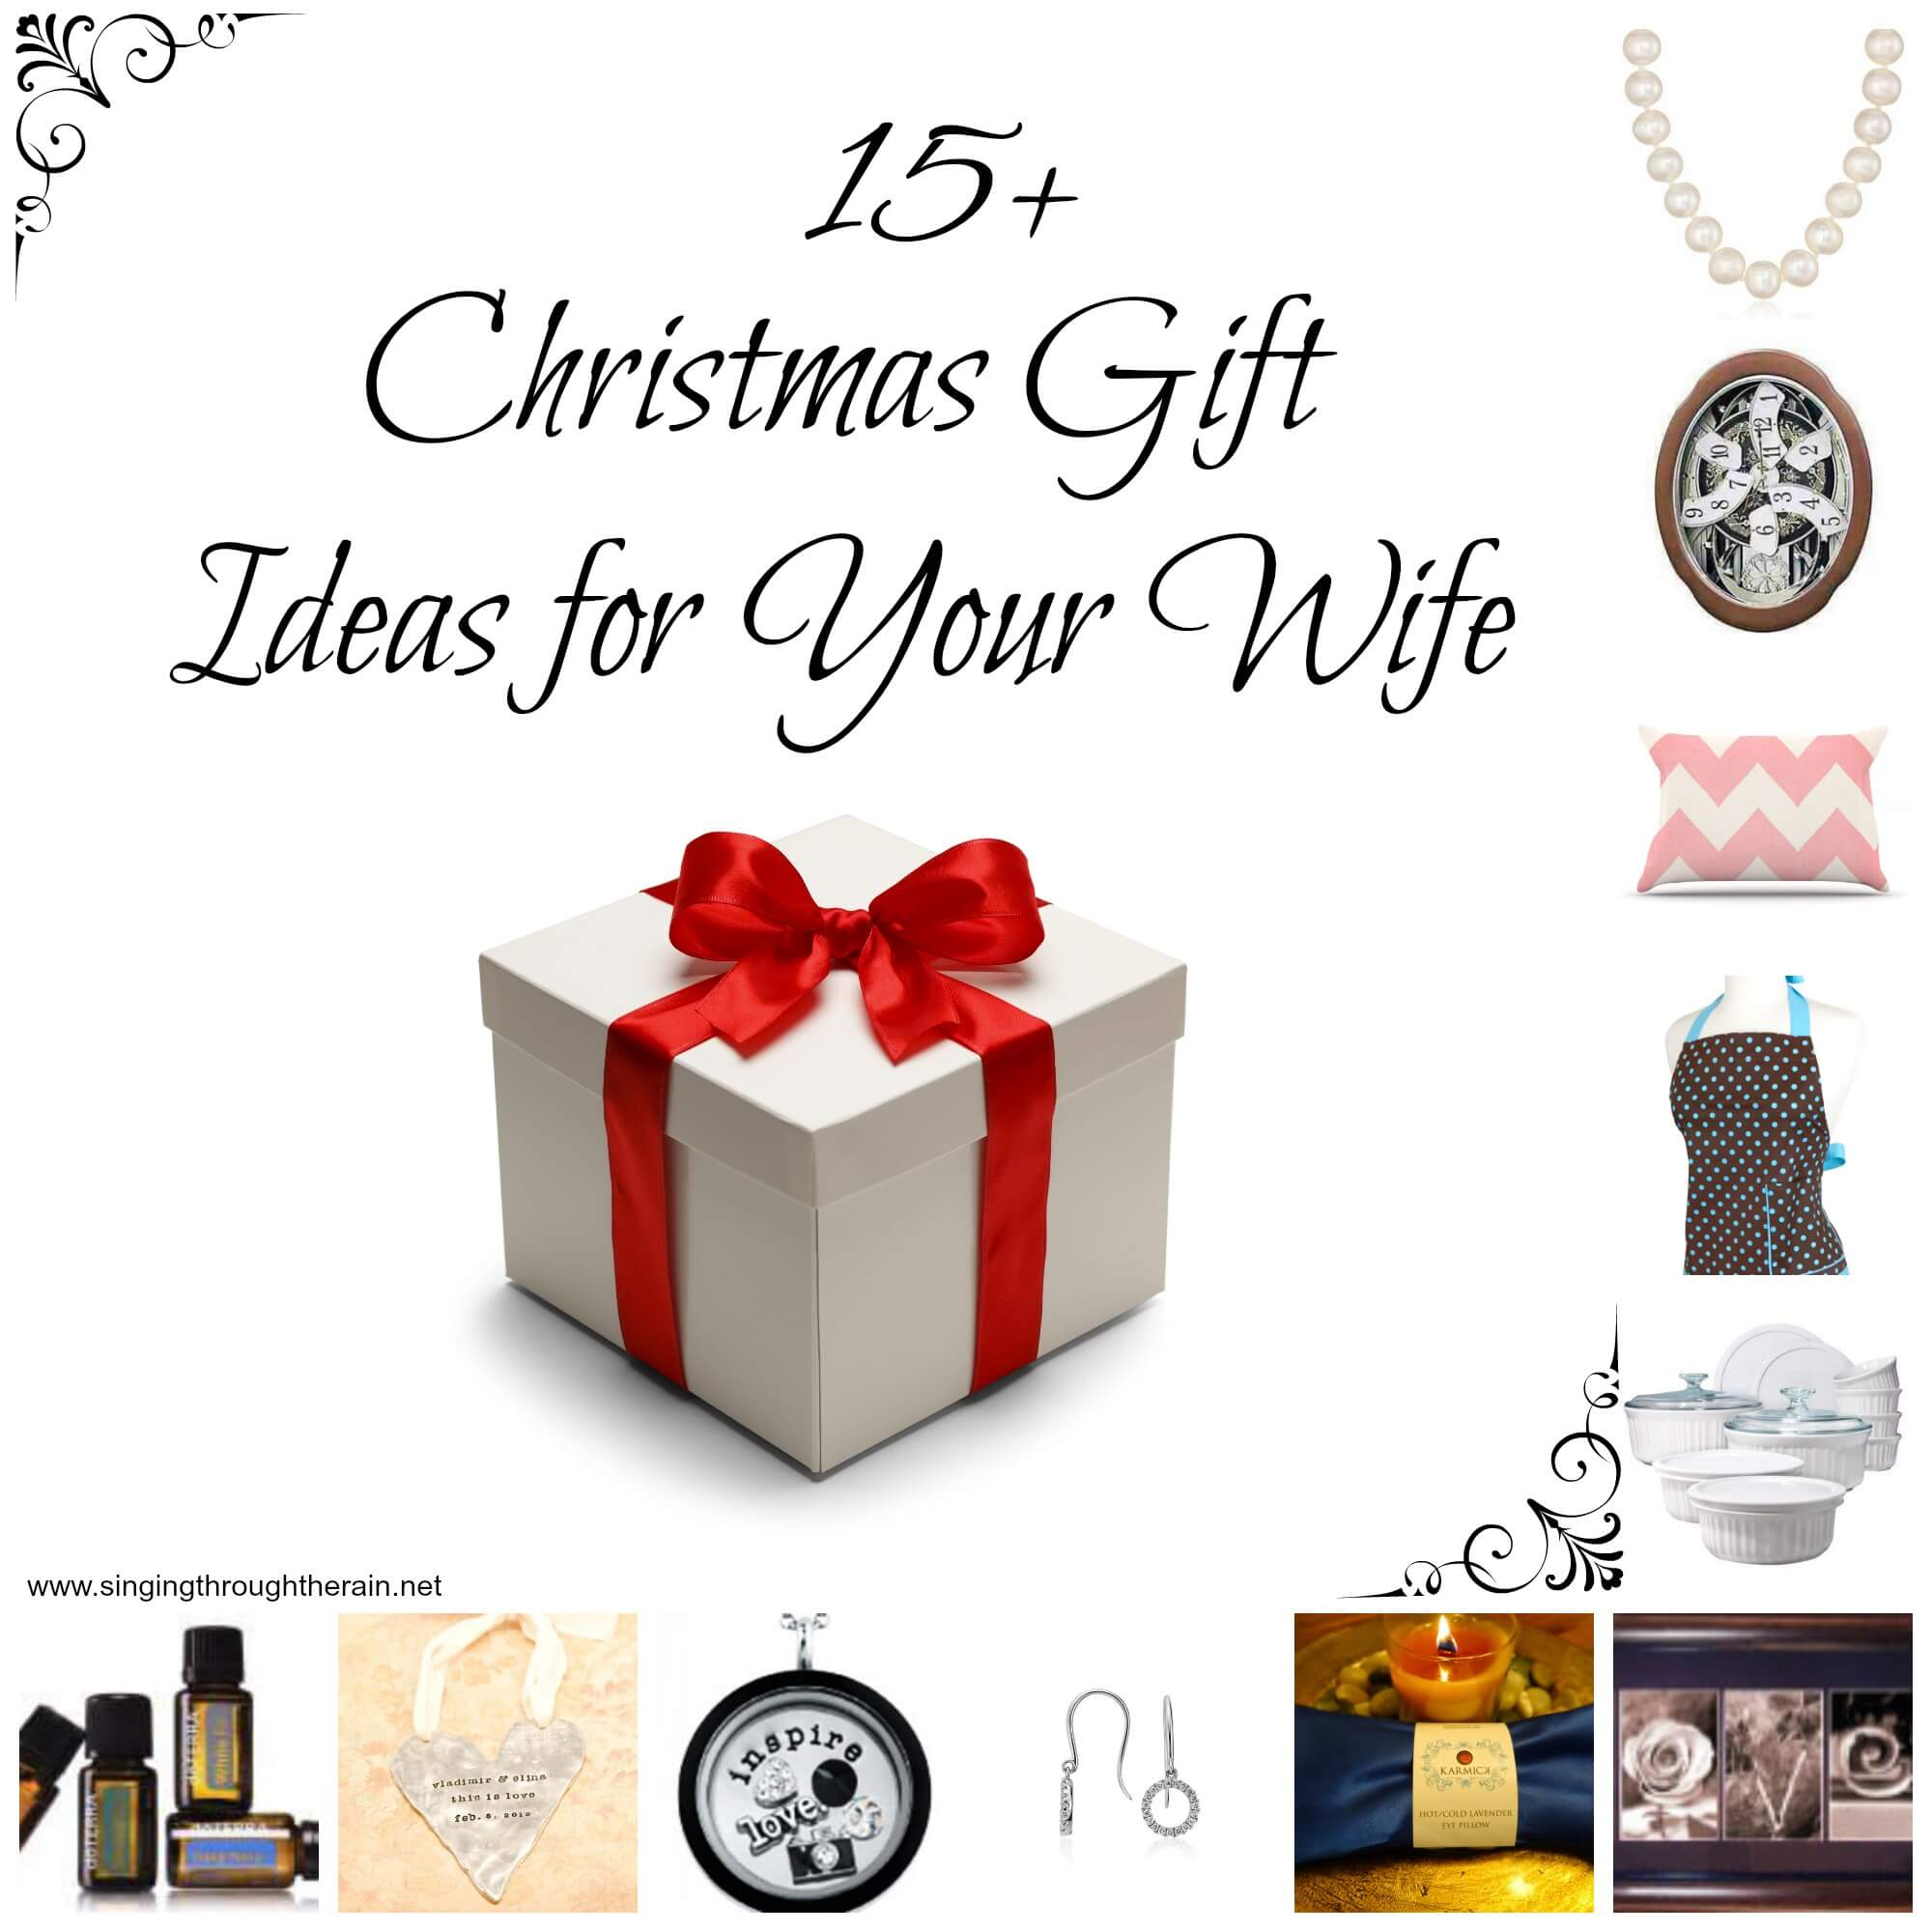 15+ Christmas Gift Ideas for Your Wife | Singing Through ...